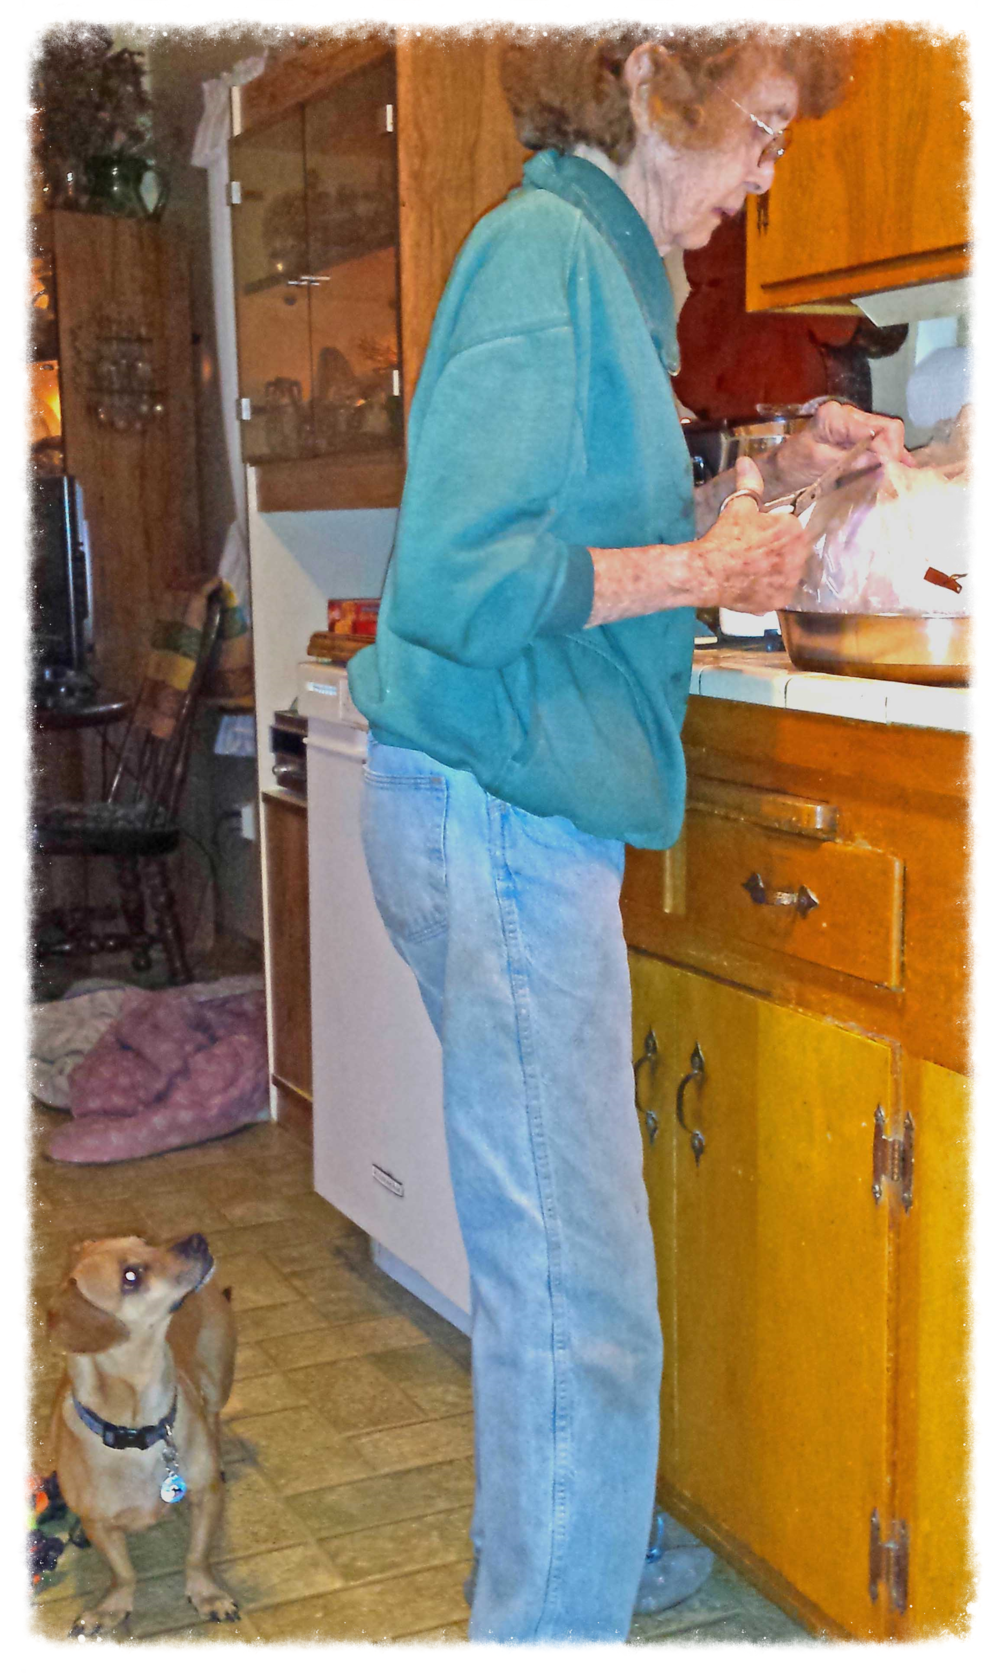 Grandma Ayers and her grand dog Doodle on Thanksgiving Day